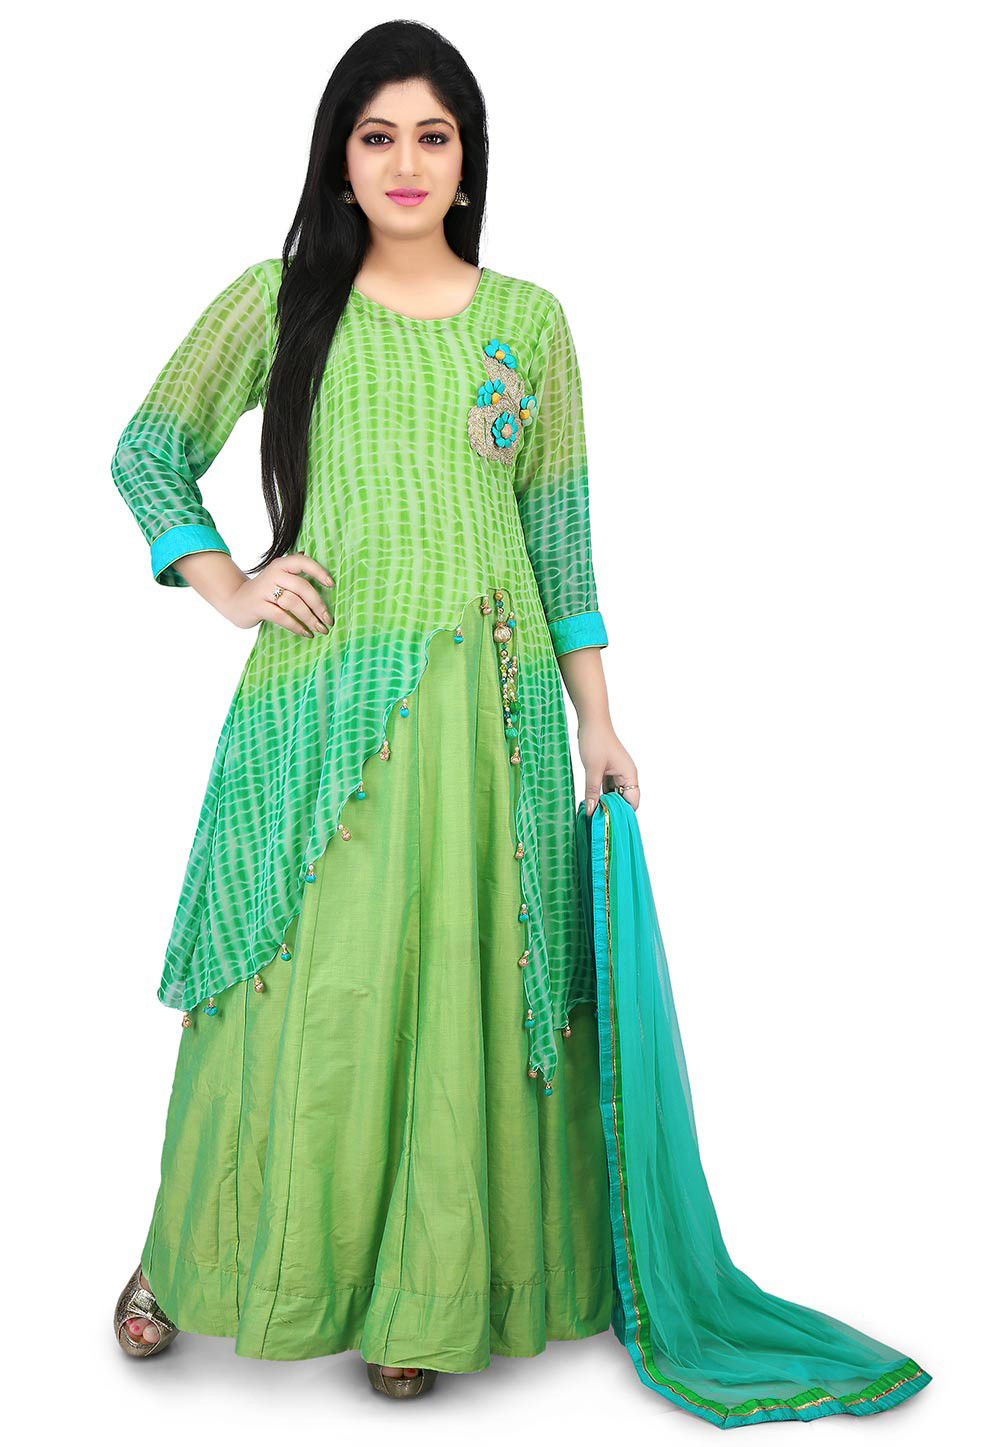 Shibori Dyed Georgette Abaya Style Suit in Green